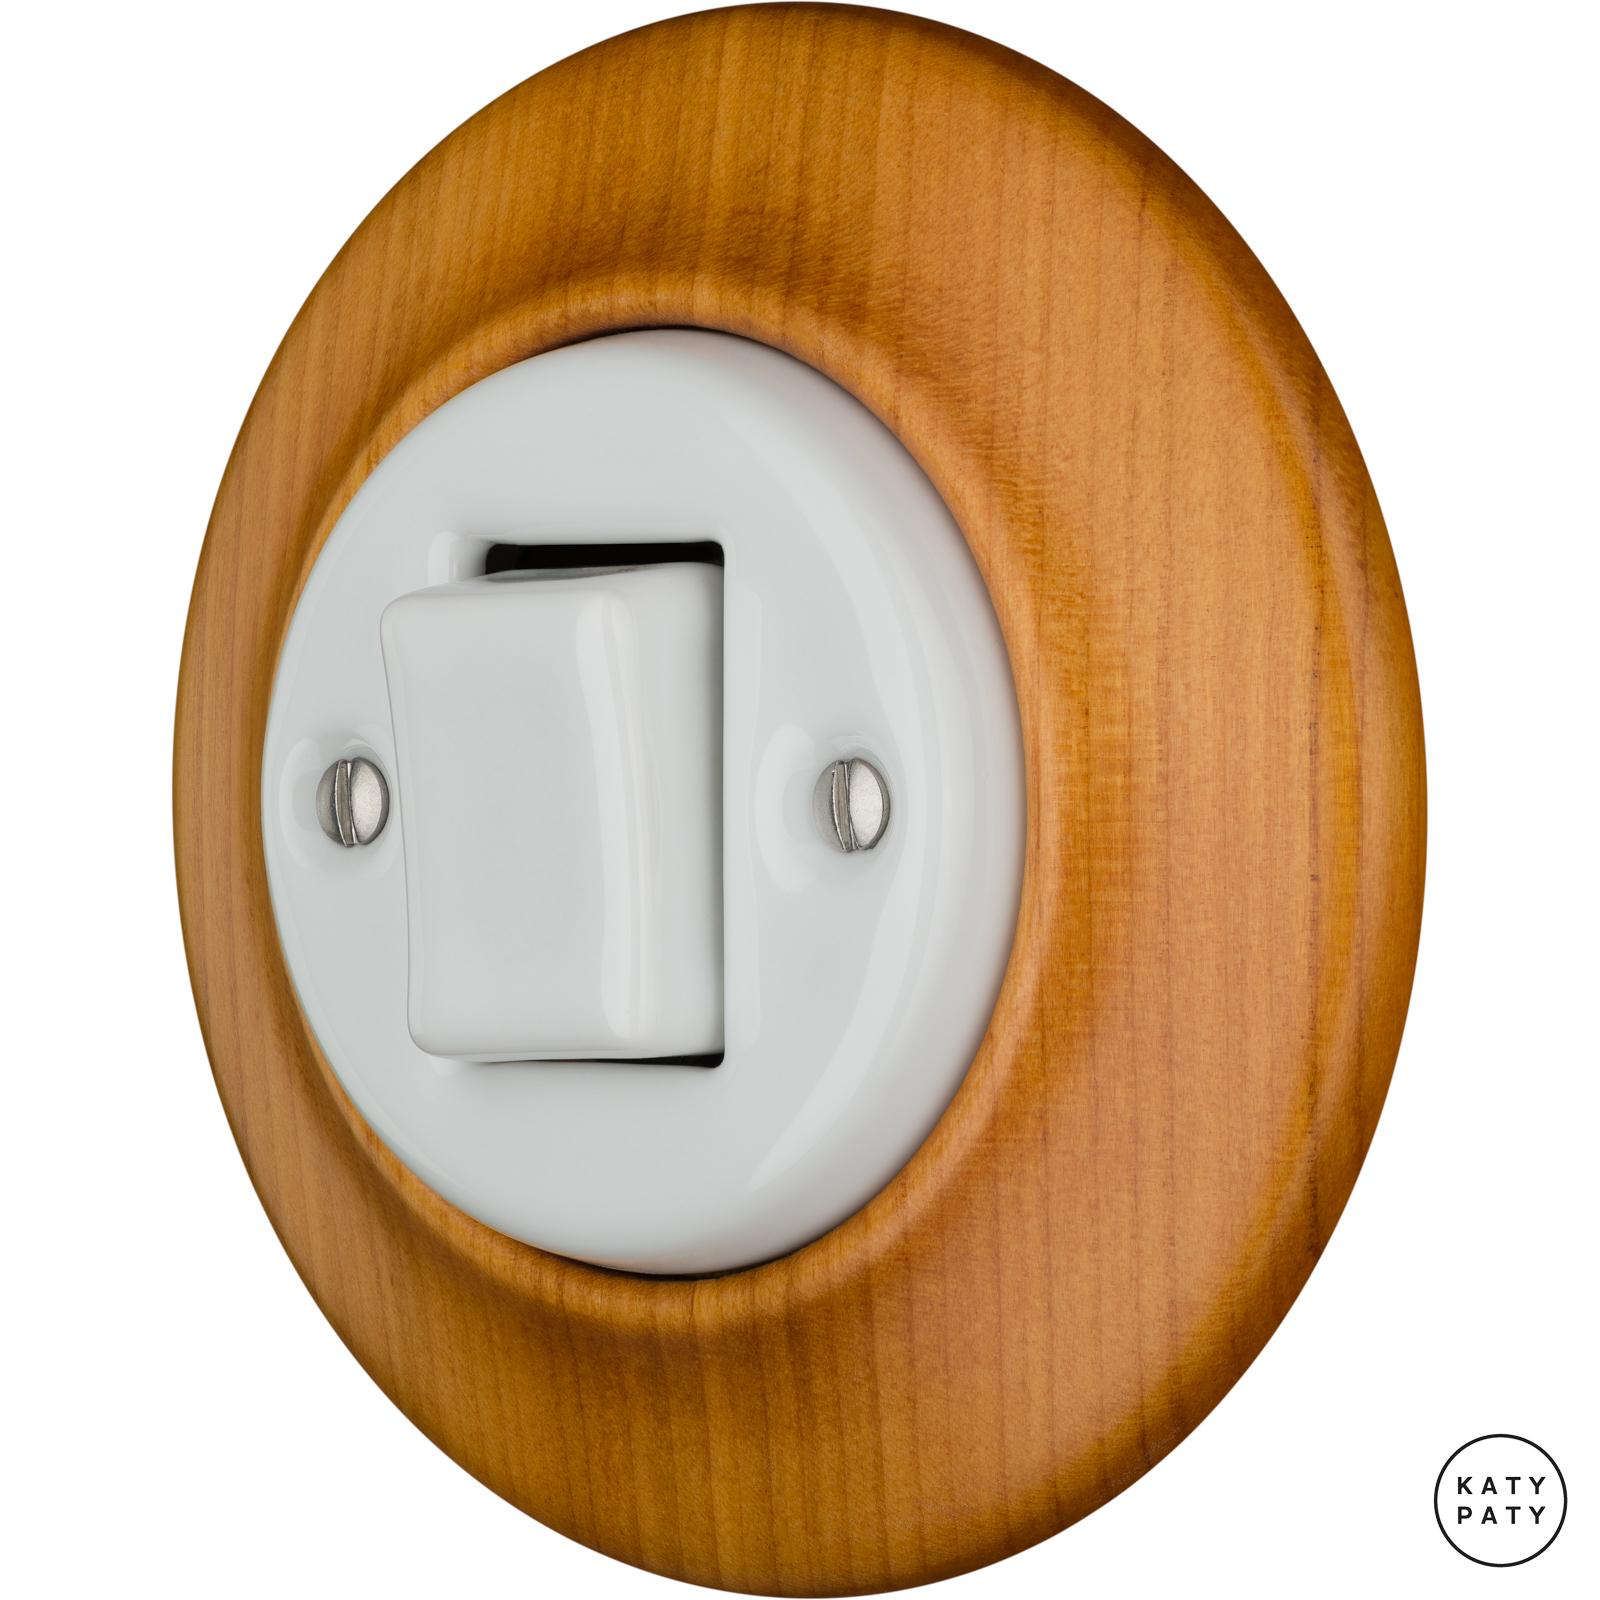 Porcelain switches - 1 gang - FAT ()  - PADELUS | Katy Paty